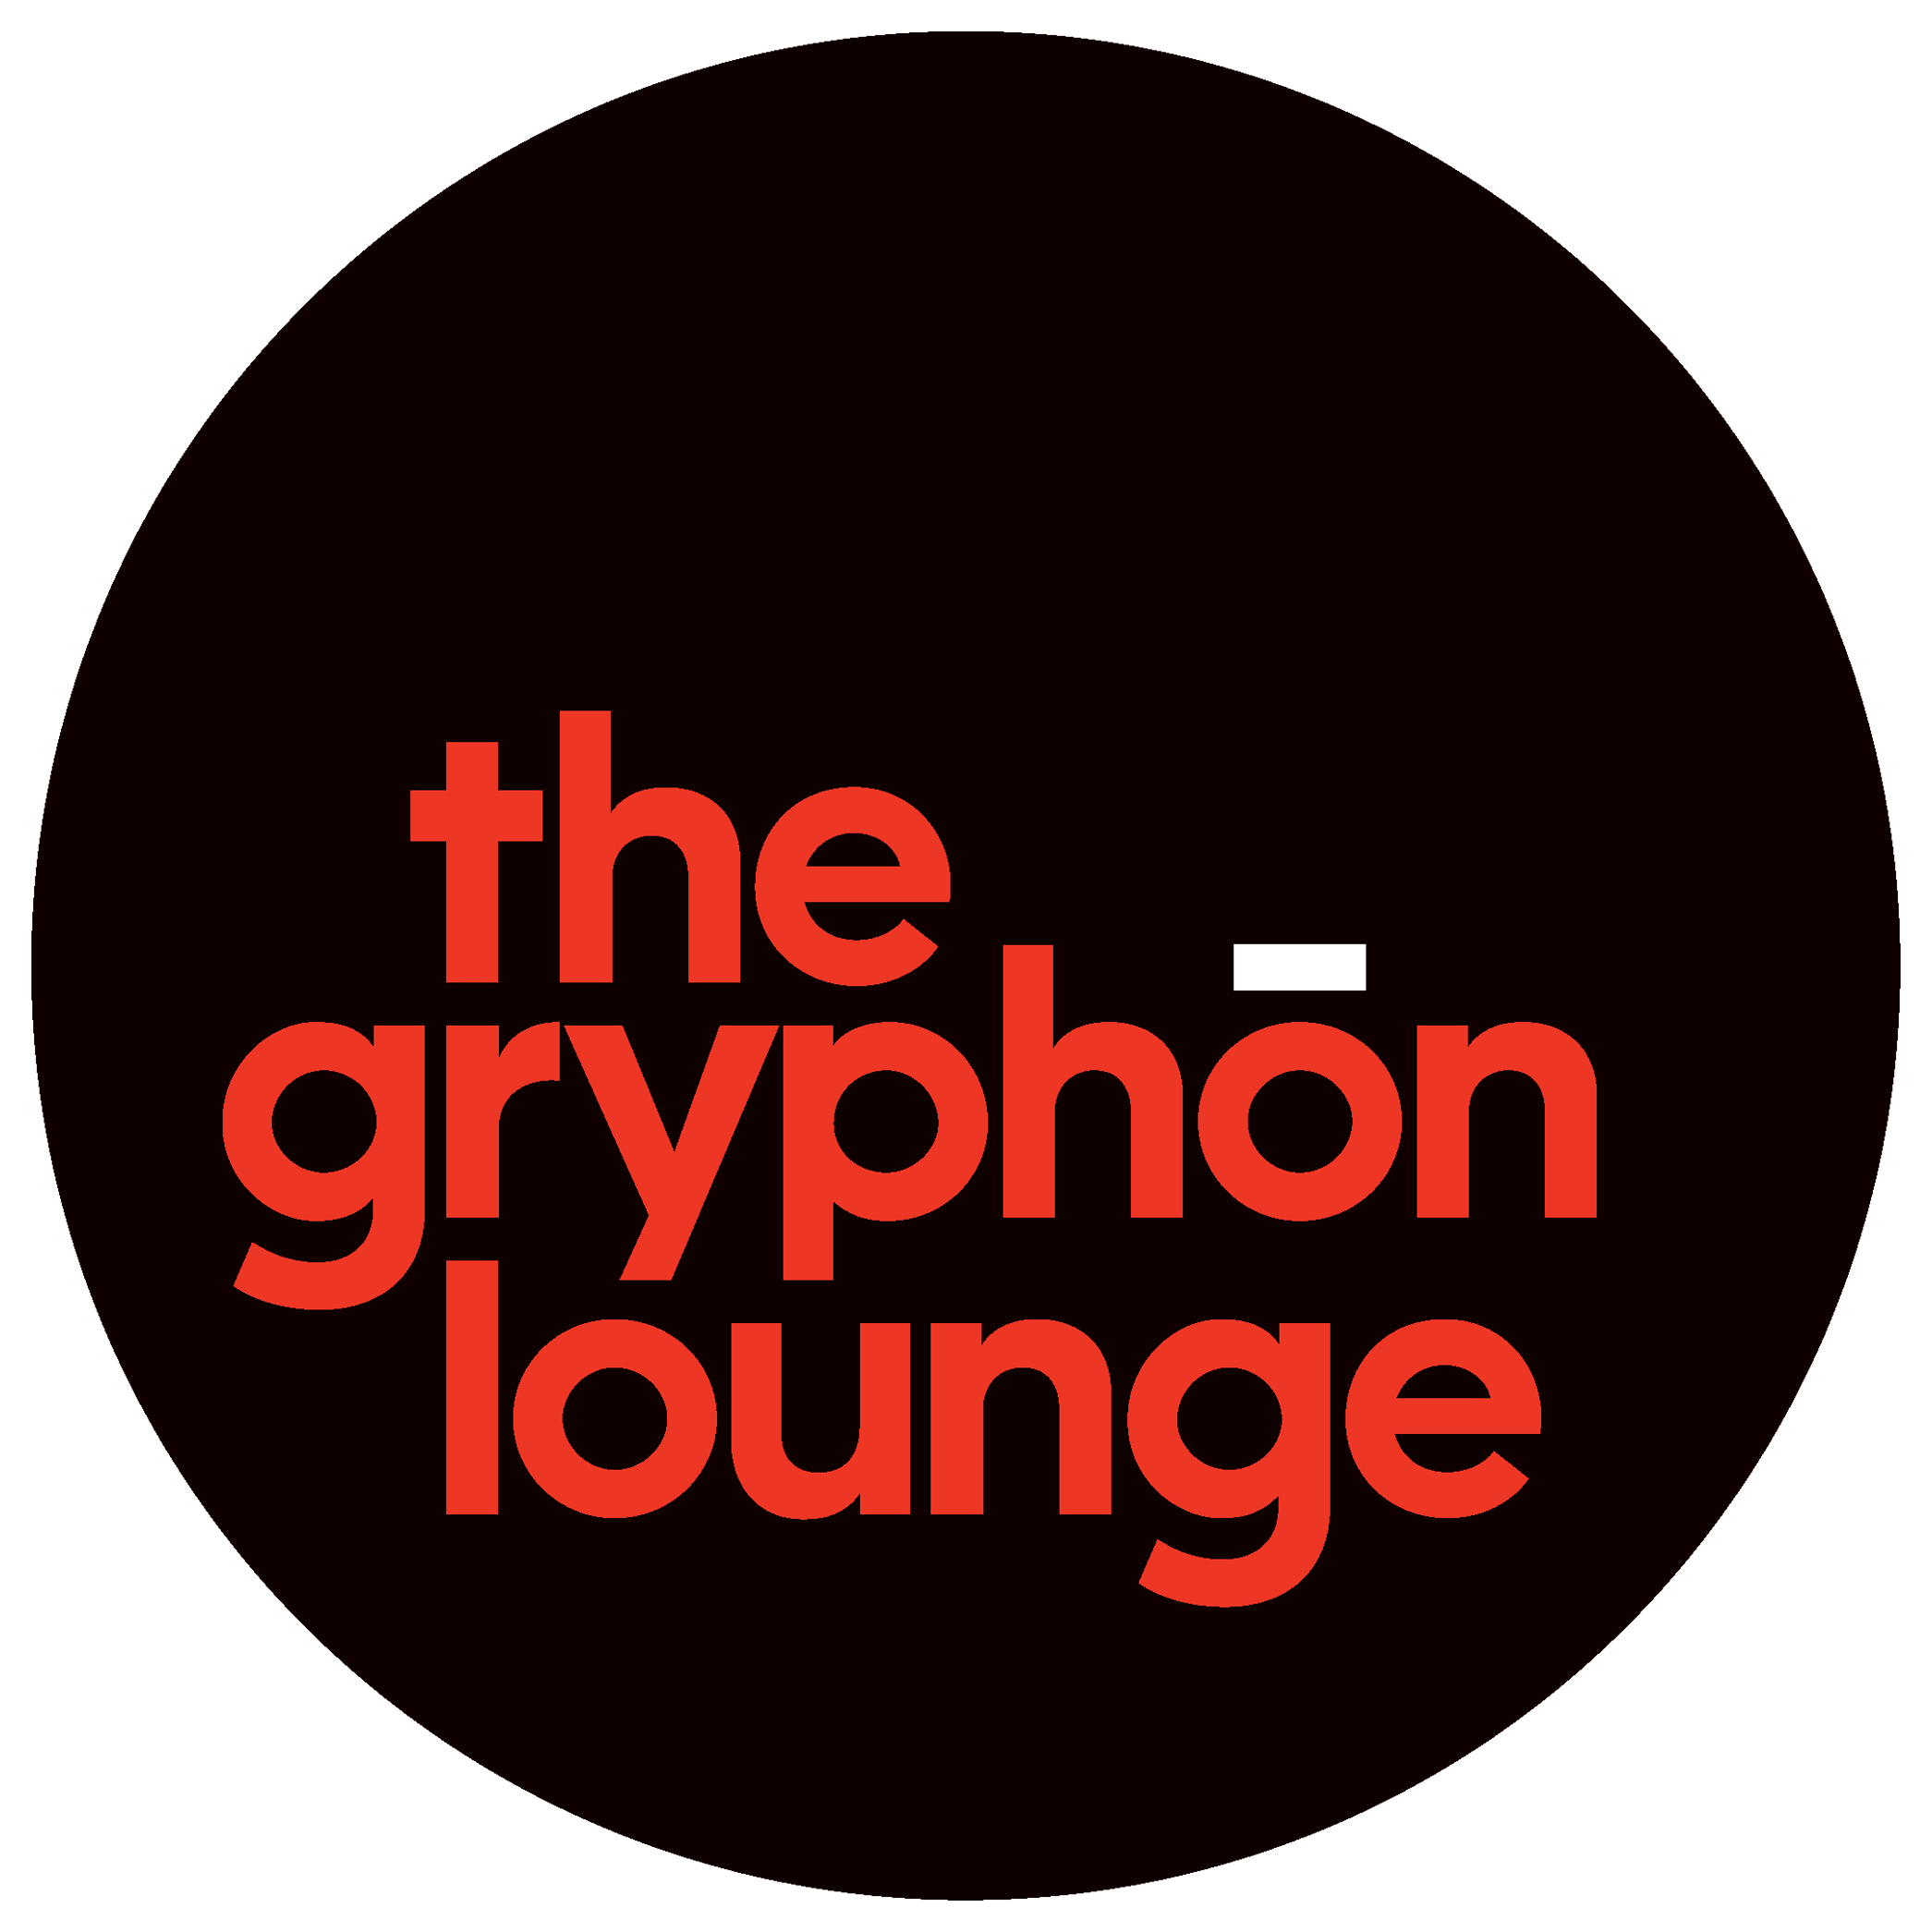 The Gryphon Lounge